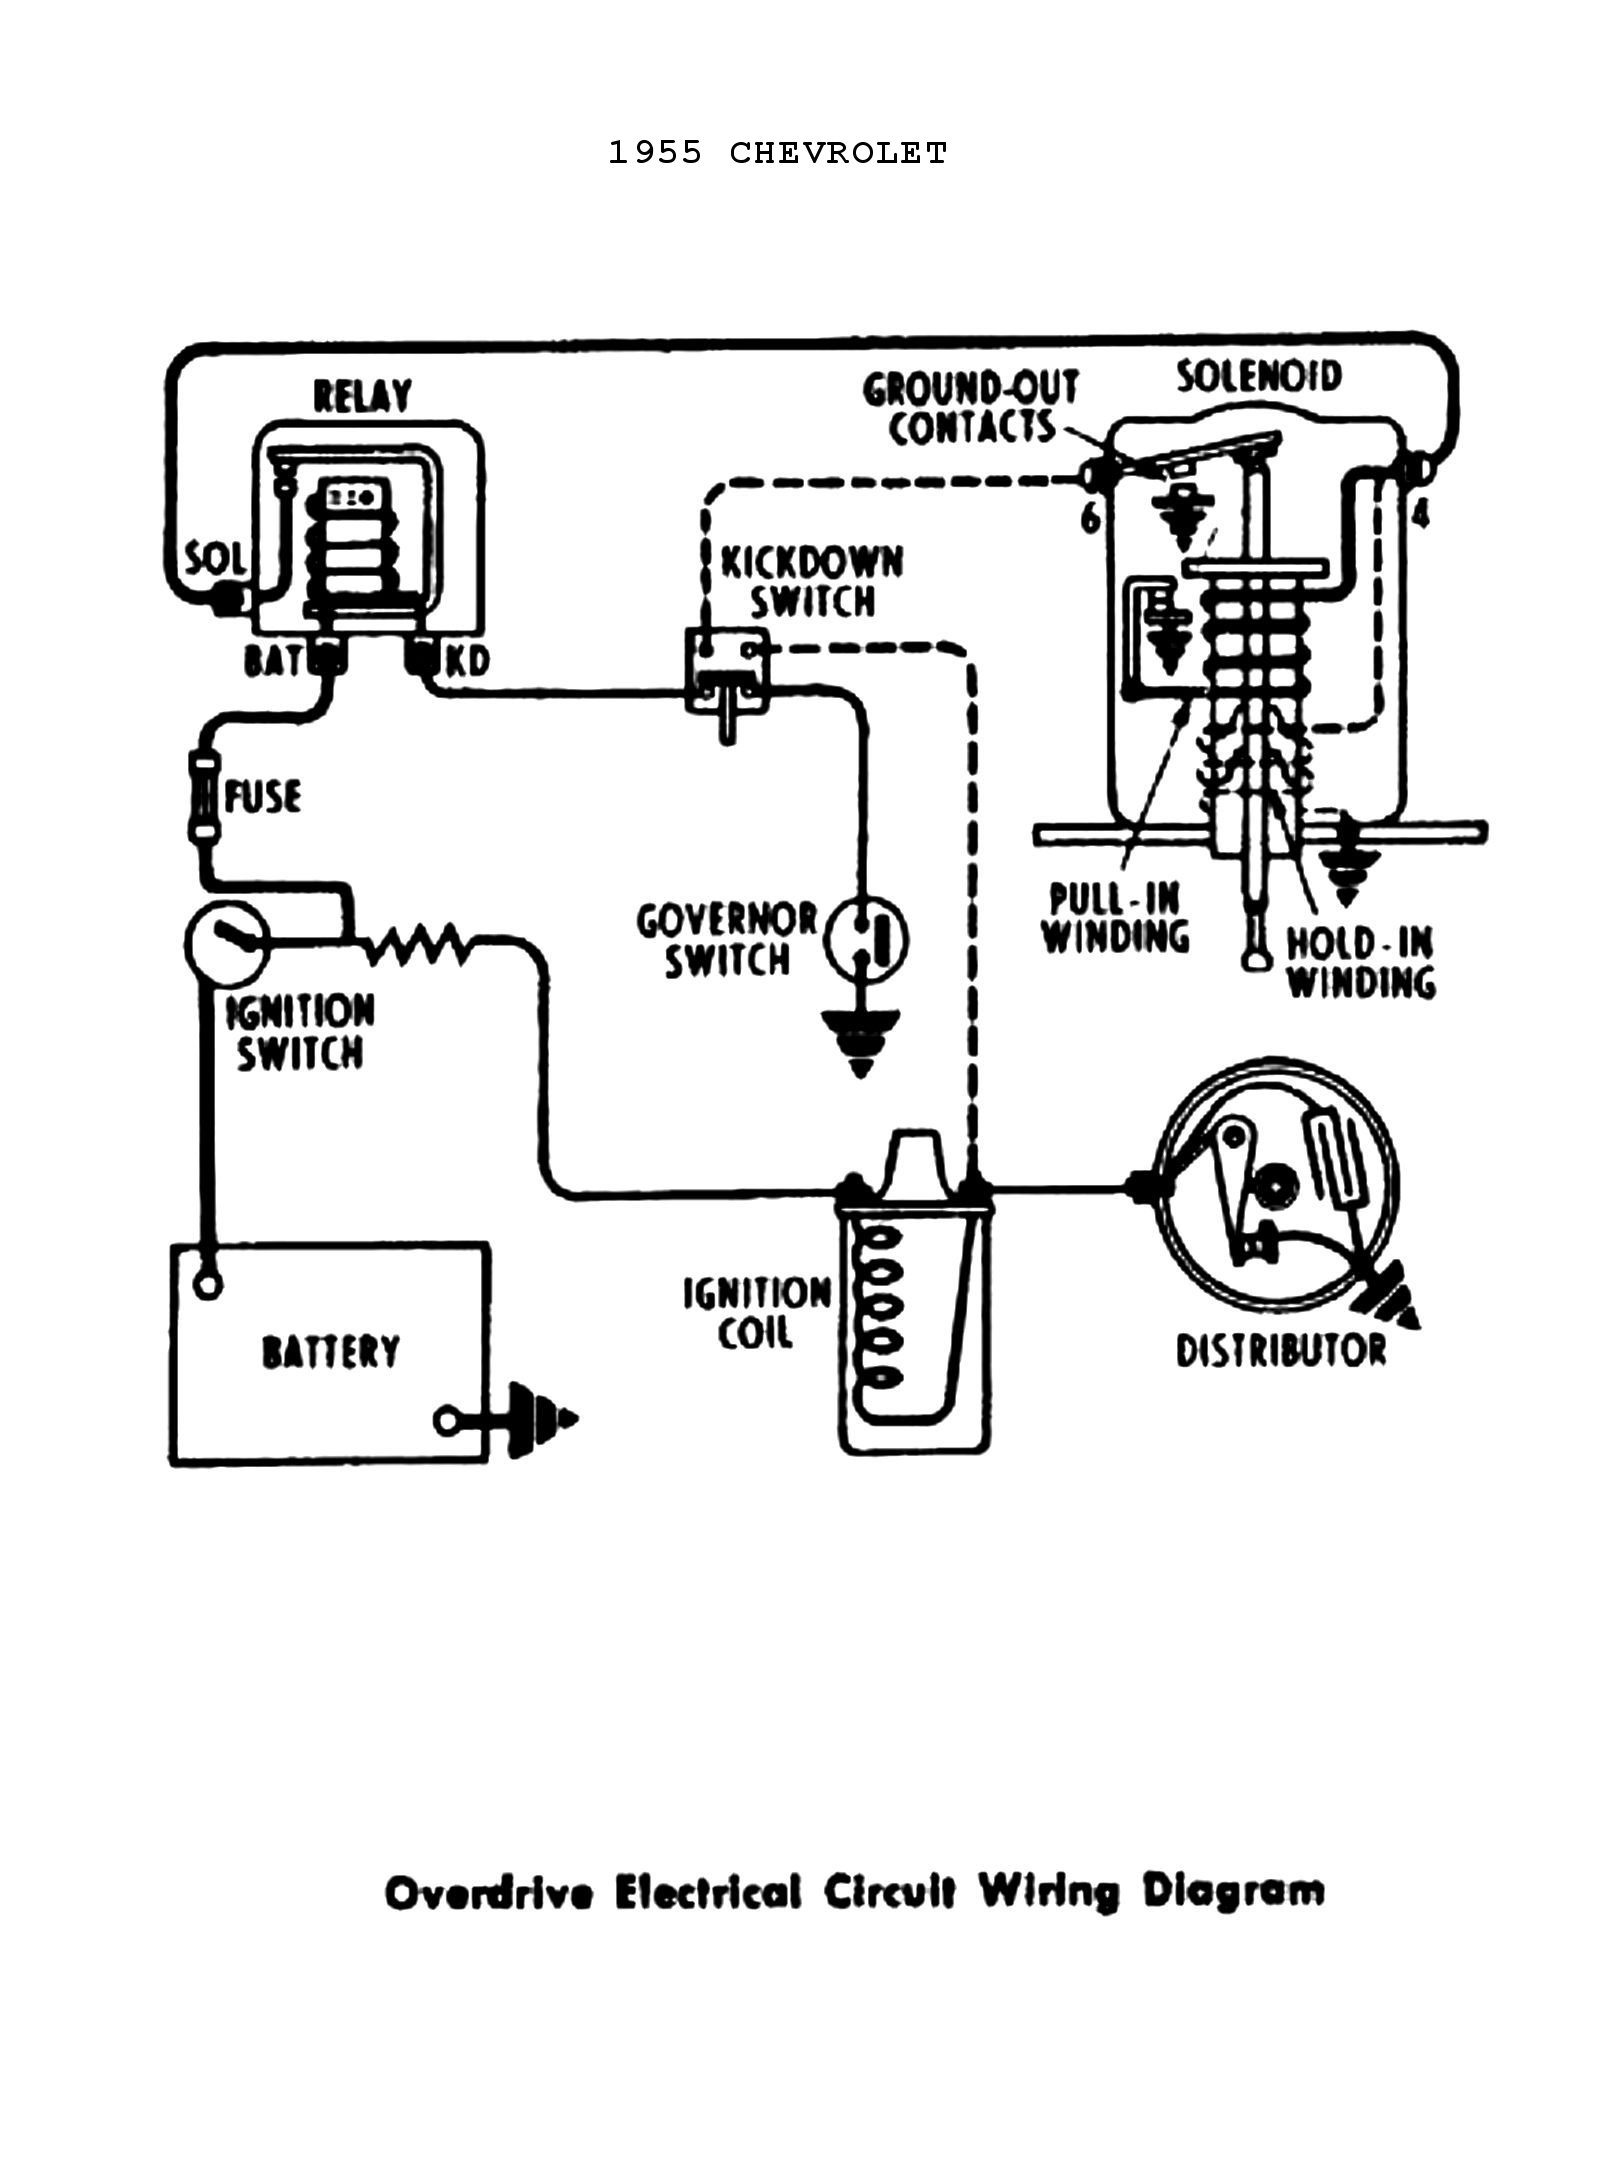 Chevy Wiring Diagrams Chevy Oil Pressure Sensor Switch Wiring Diagram 52  Chevy Ignition Switch Wiring Diagram